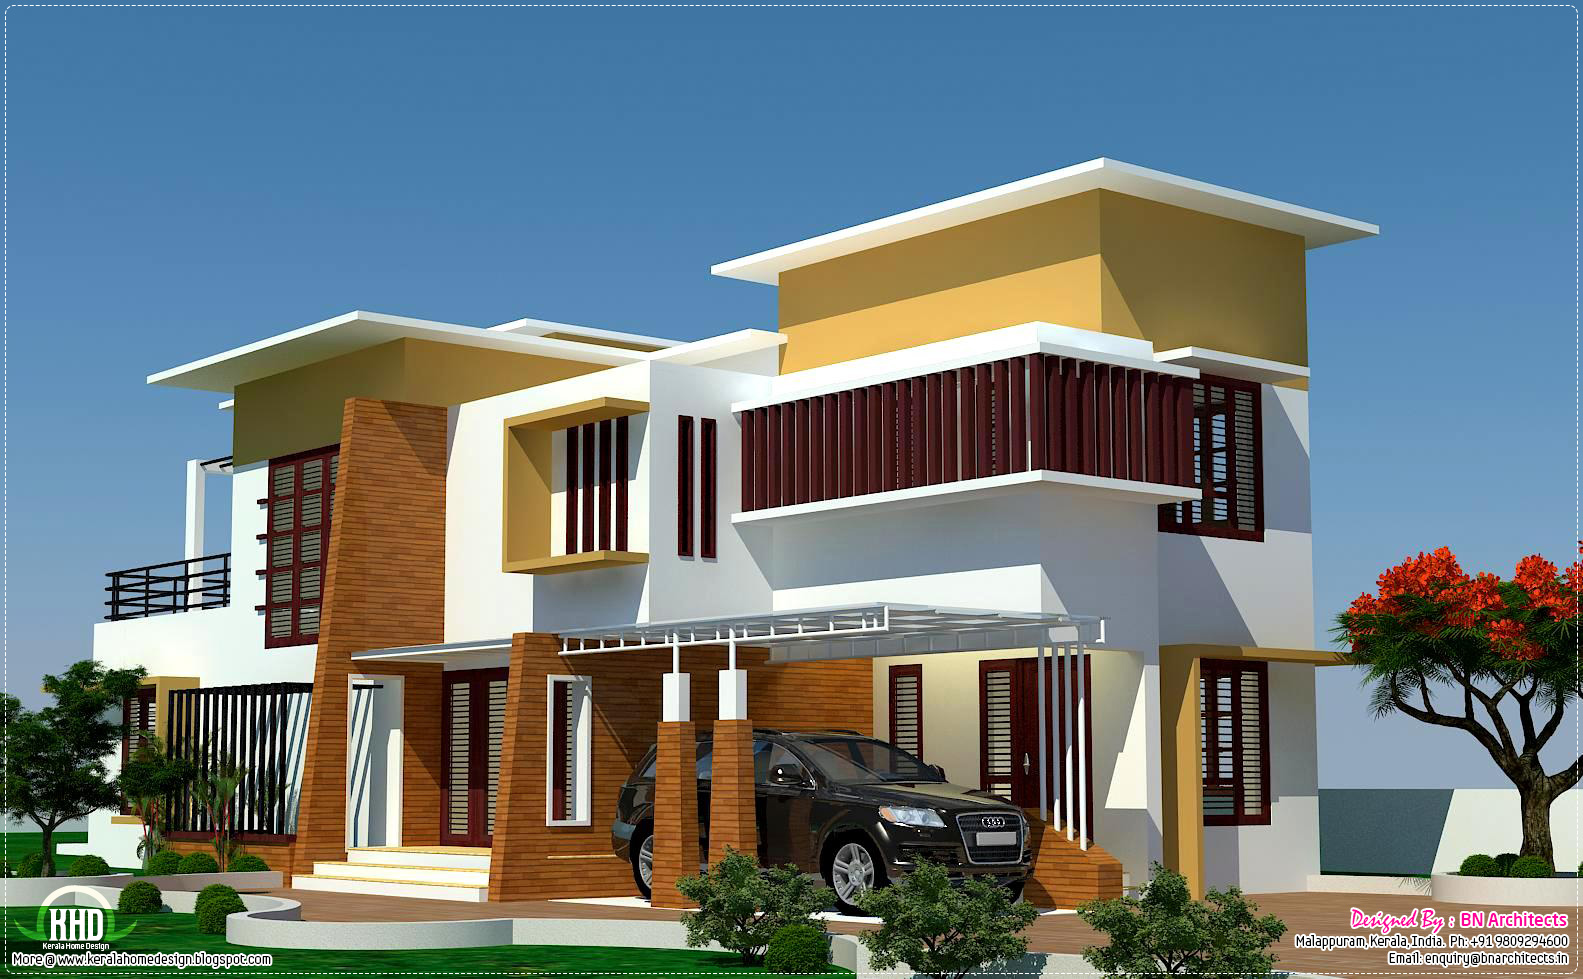 4 bedroom modern villa design home design ideas for you for 4 bedroom villa plans